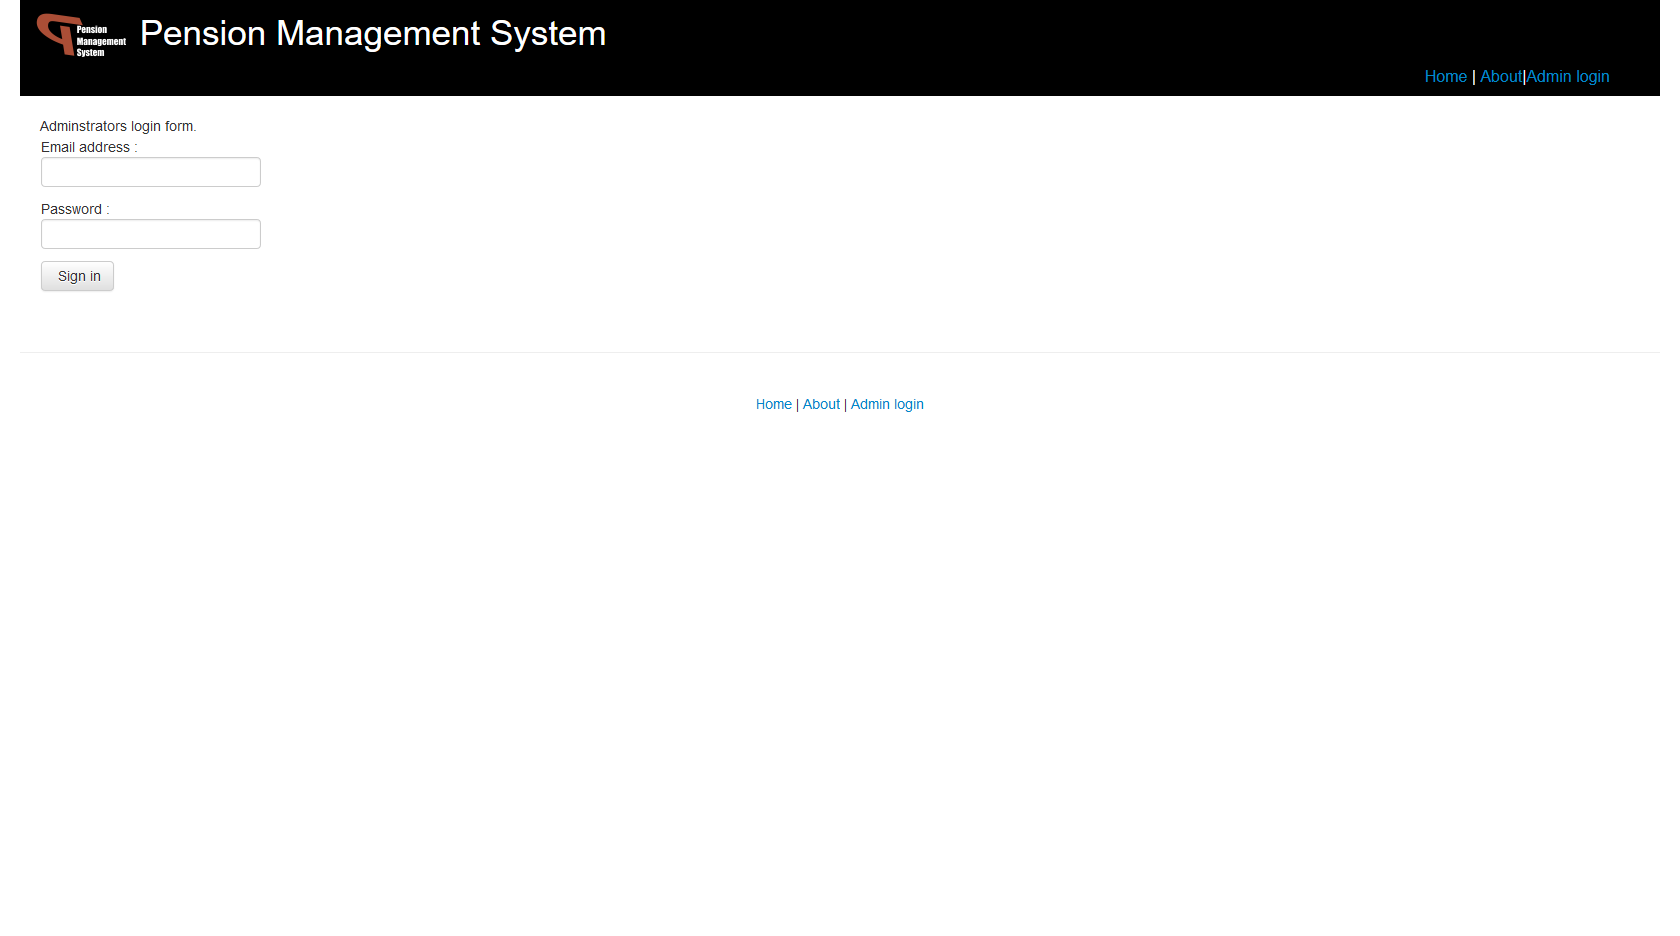 Pension Management System - Admin Login Paga